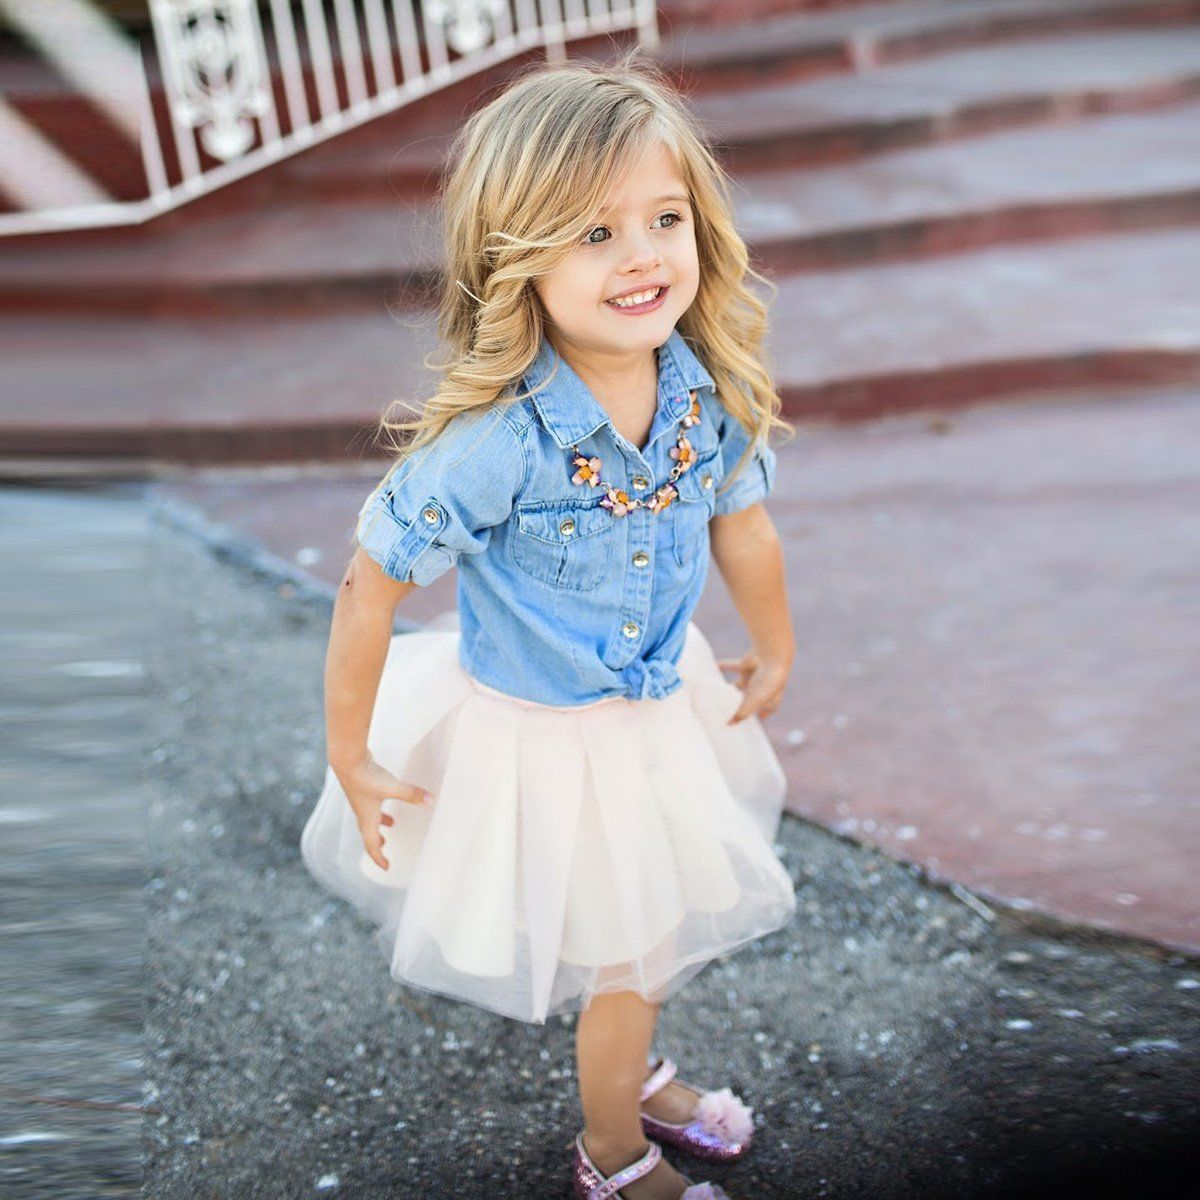 Baby Strumpfhosen Set 2pcs Toddler Kids Baby Girls Outfits Denim Shirt Tops Tutu Skirt